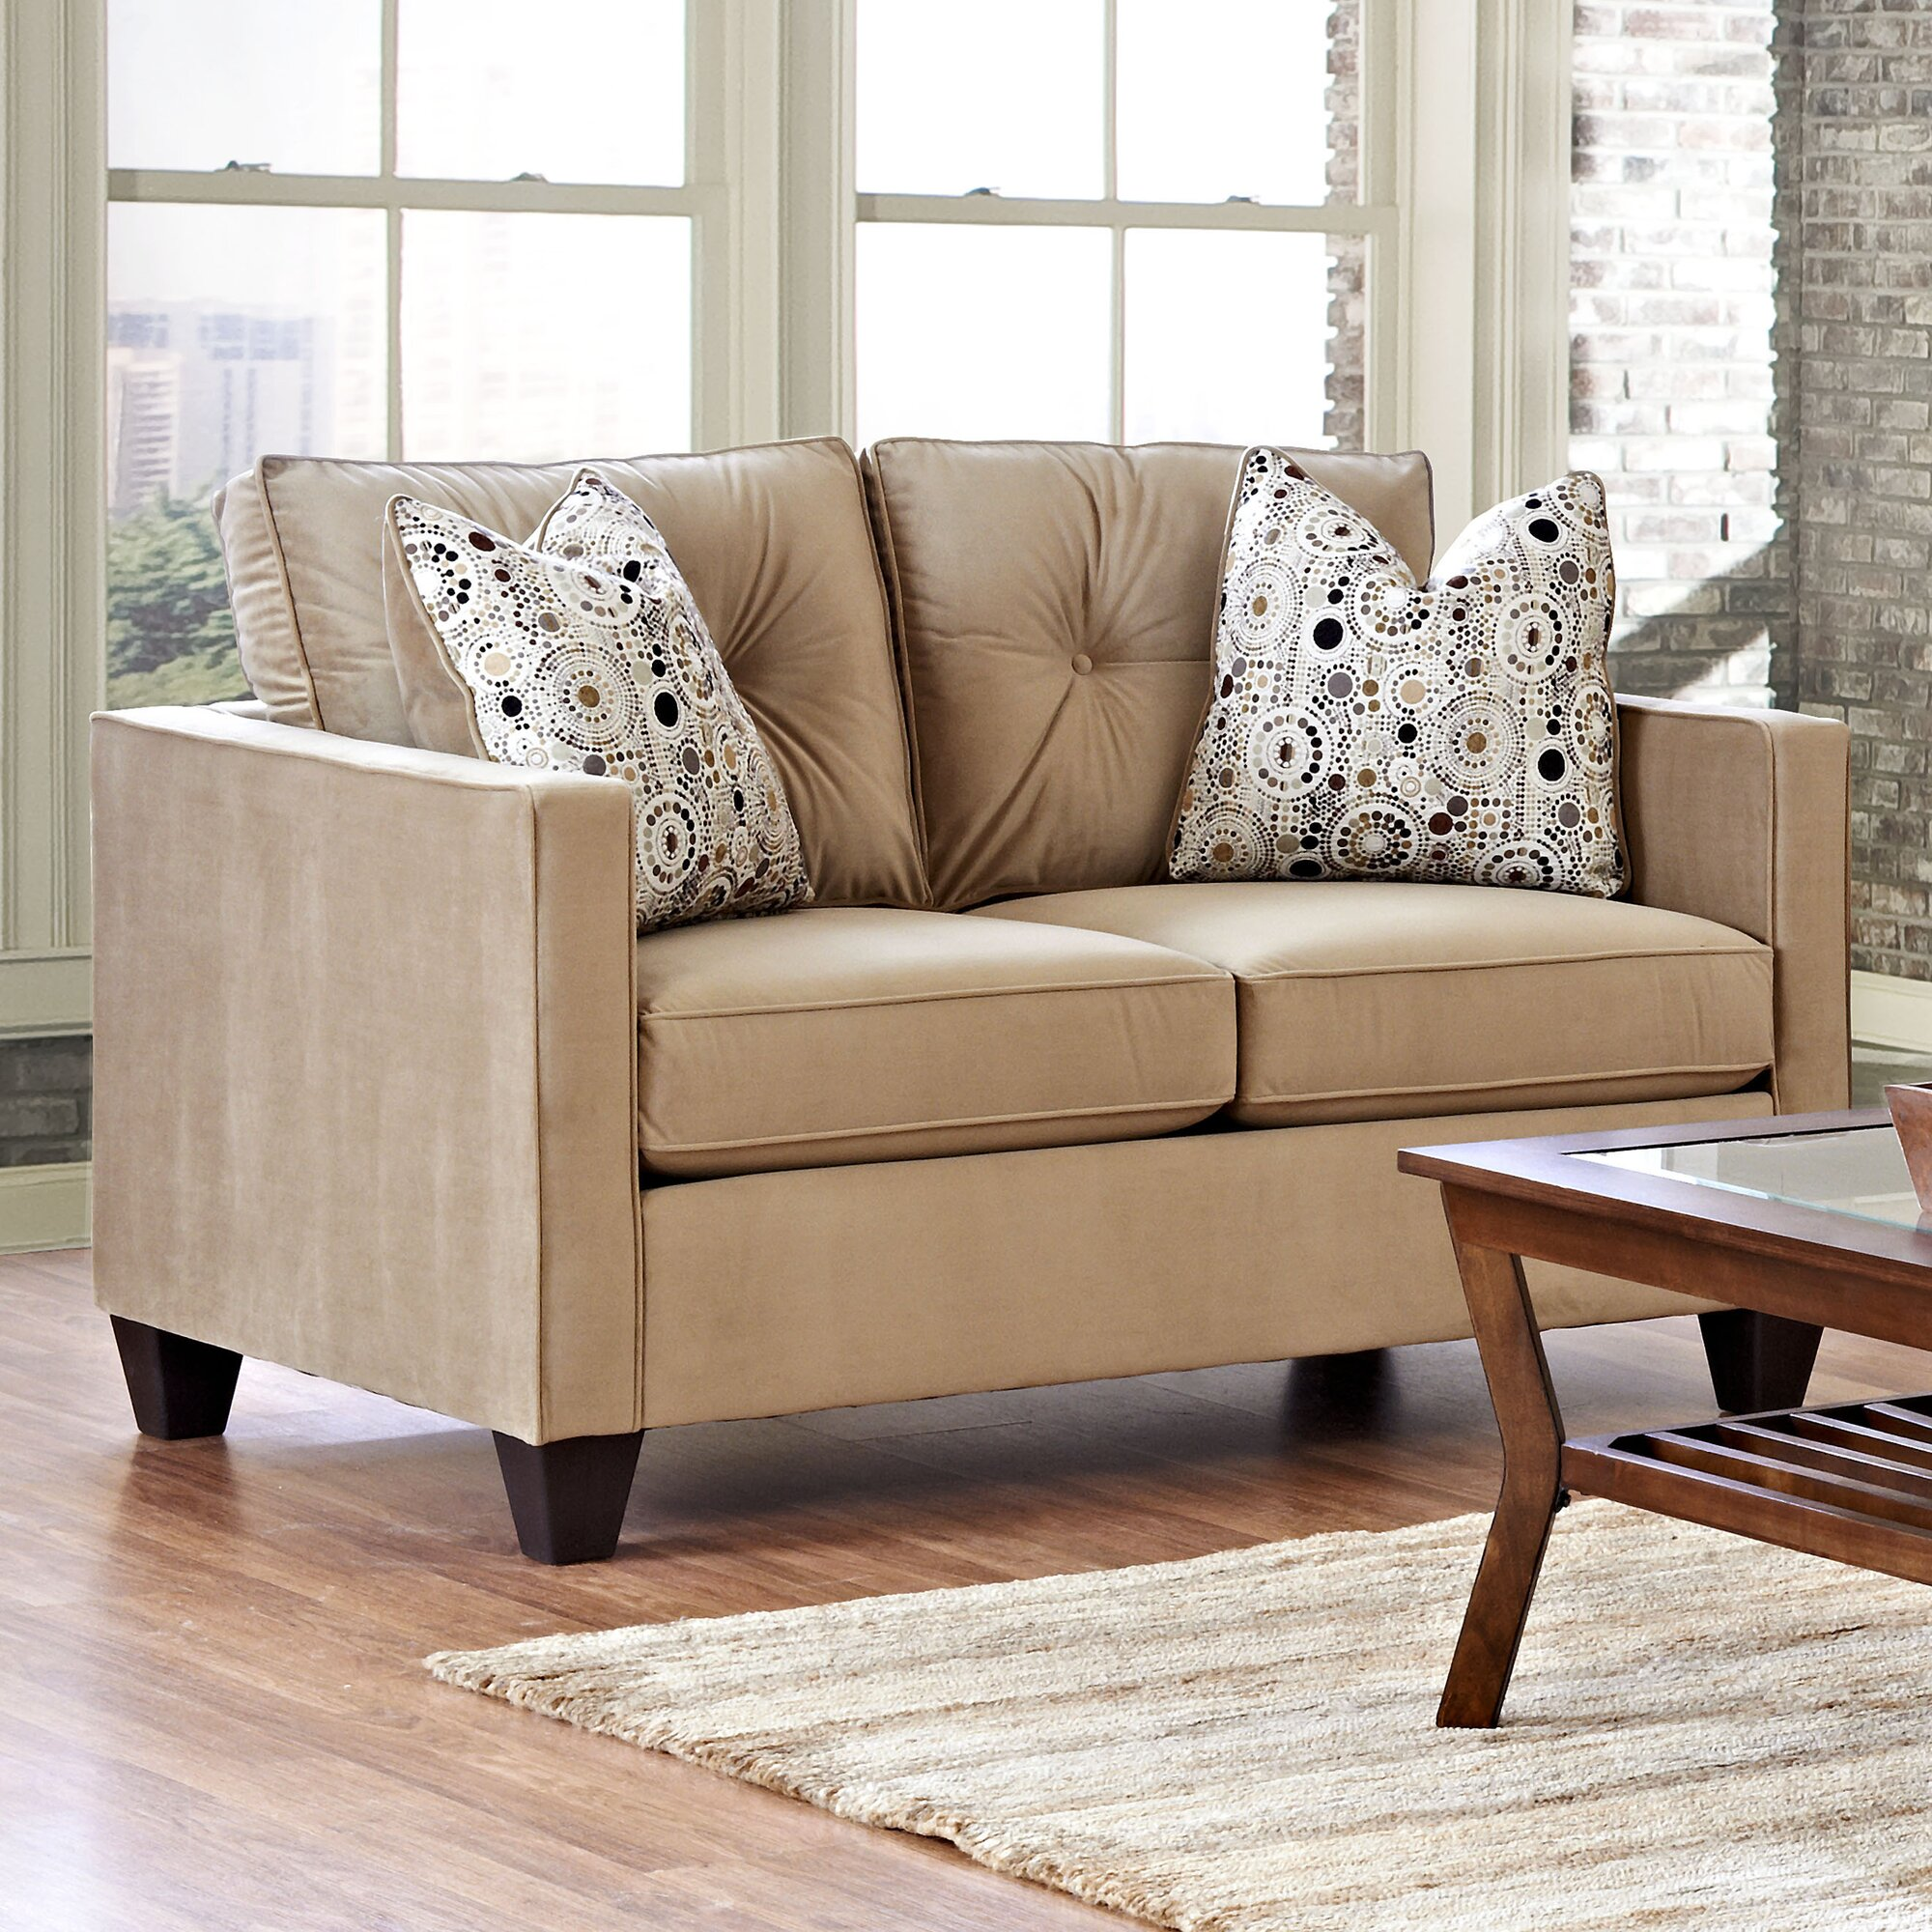 woodhaven living room furniture. Klaussner Furniture Derry Living Room Collection Reviews Wayfair  Woodhaven safemarket us